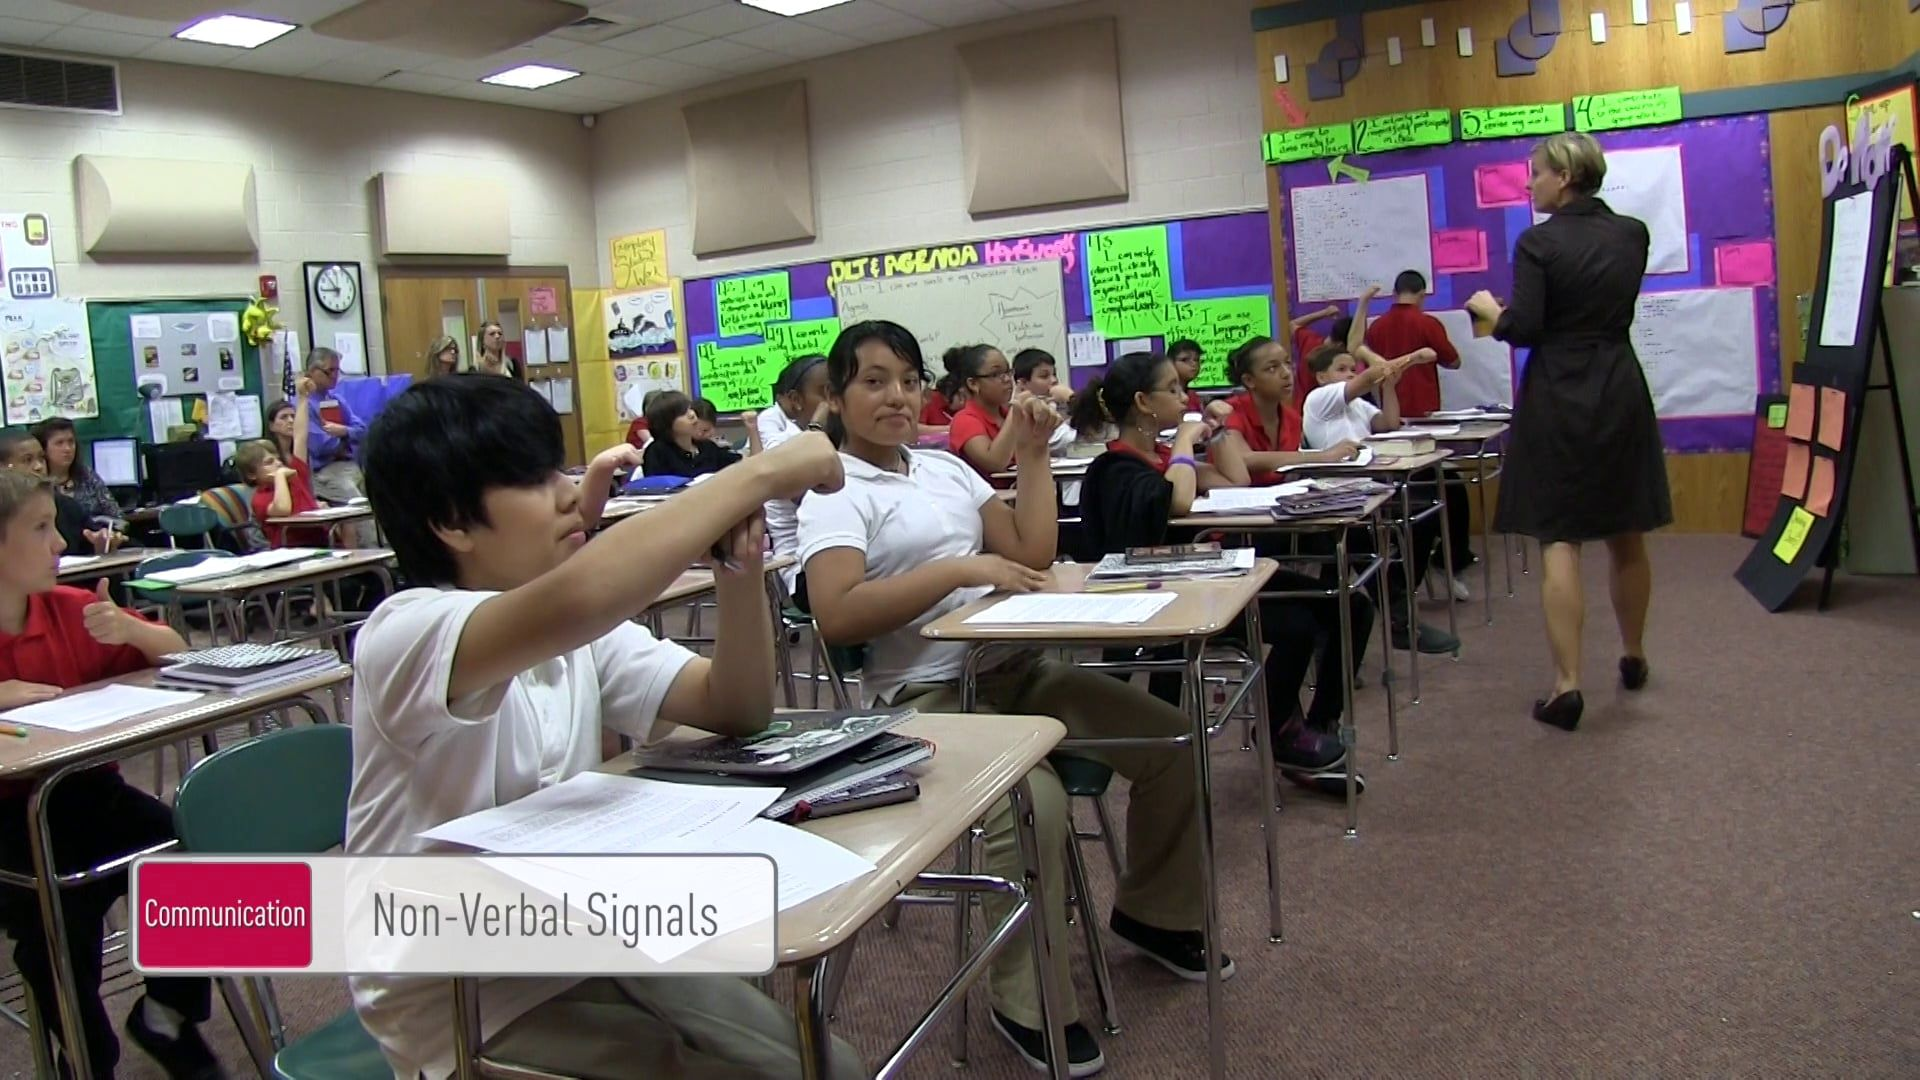 Nonverbal Signals Management In The Active Classroom